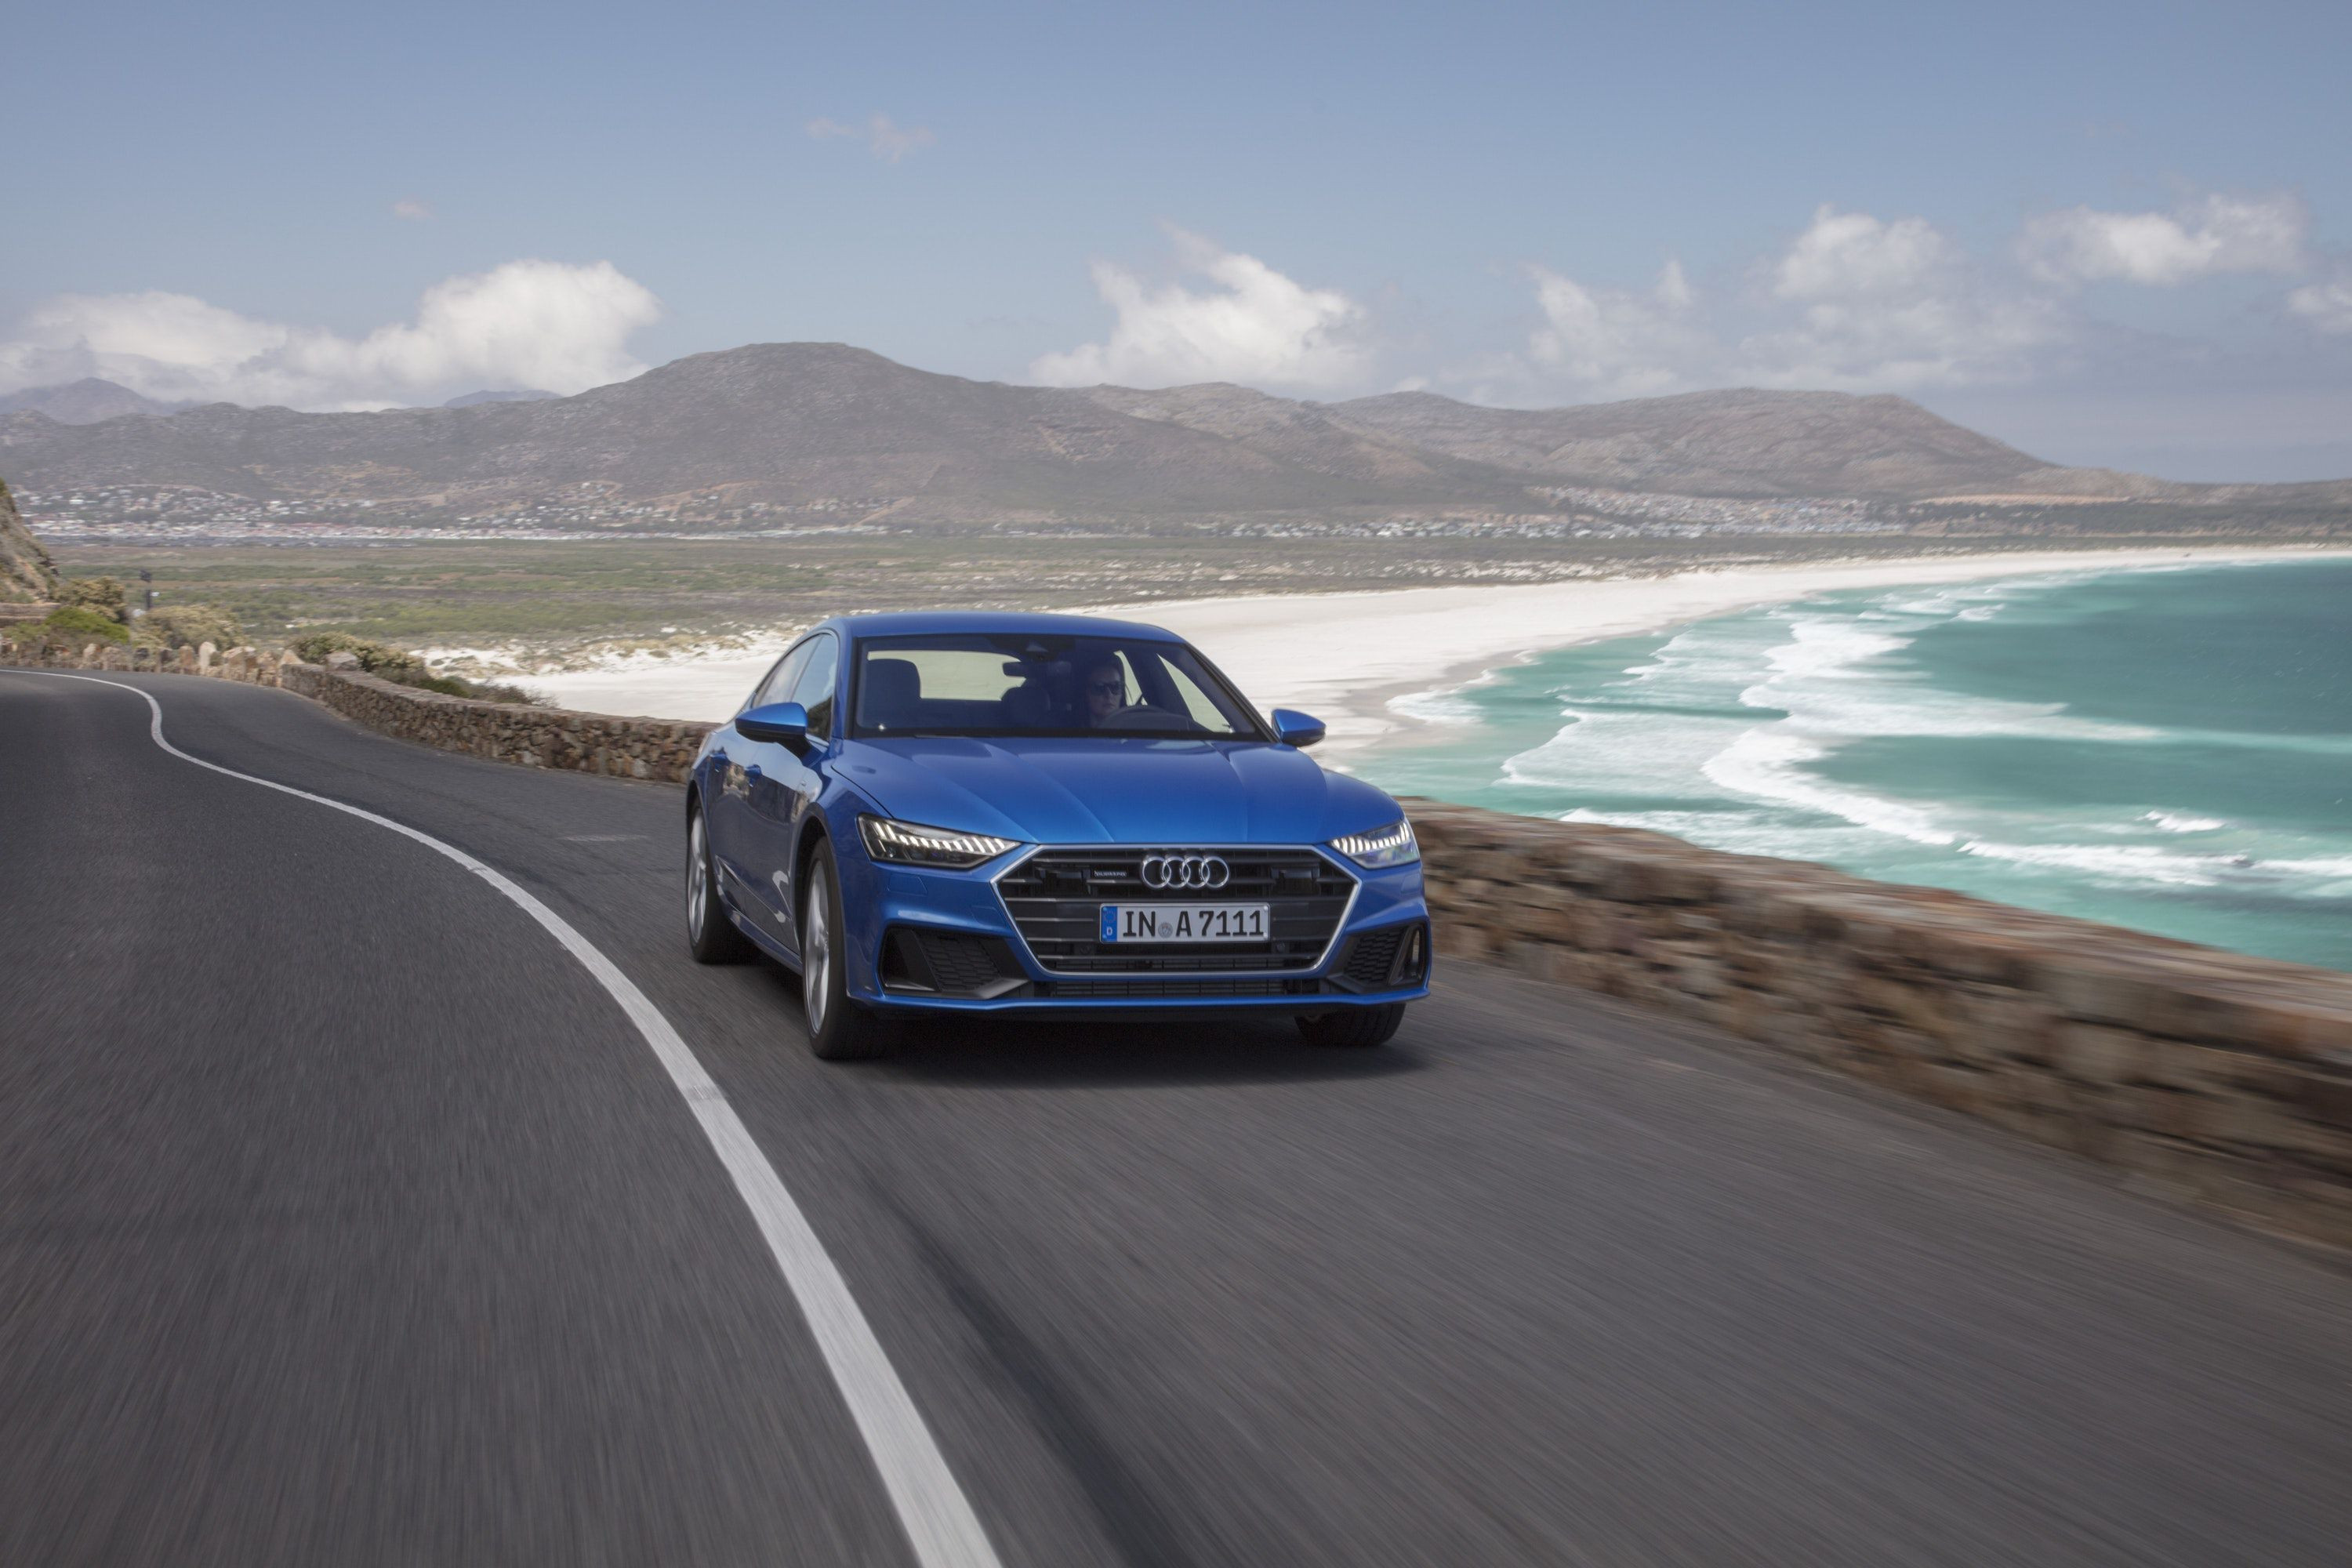 front view of a blue Audi A7 driving by the side of a beach